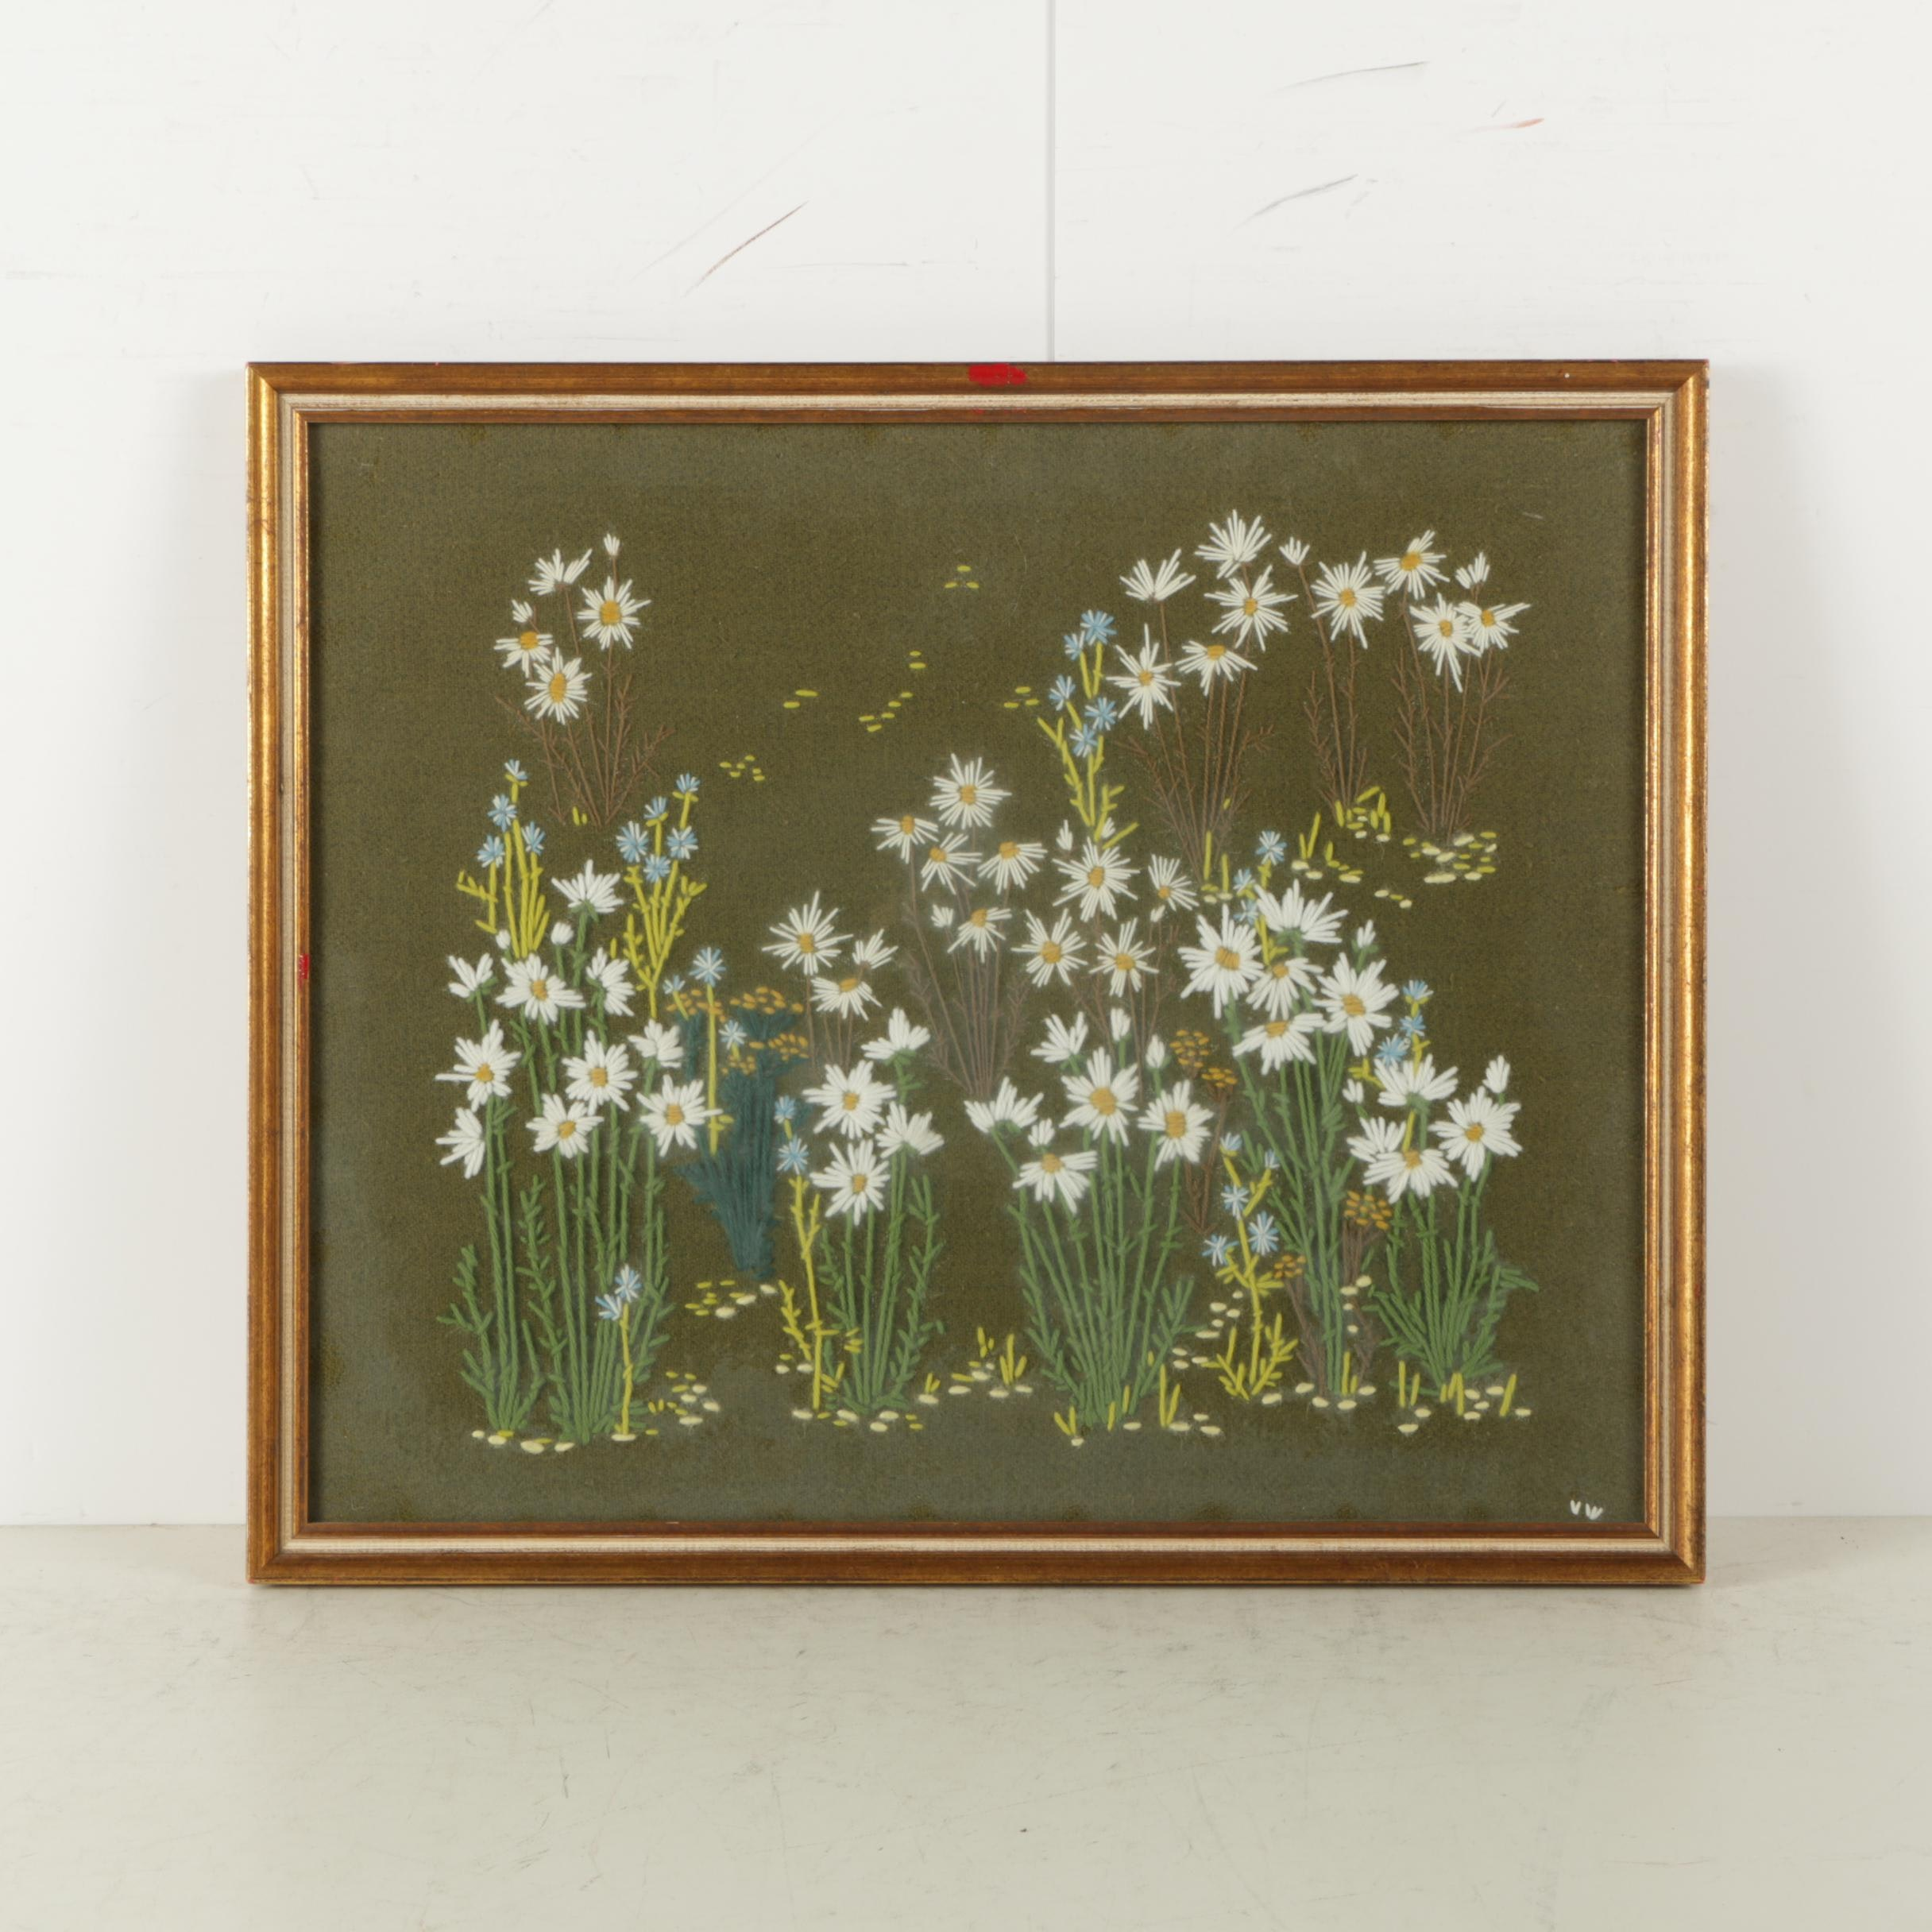 Framed Embroidery of Daisies